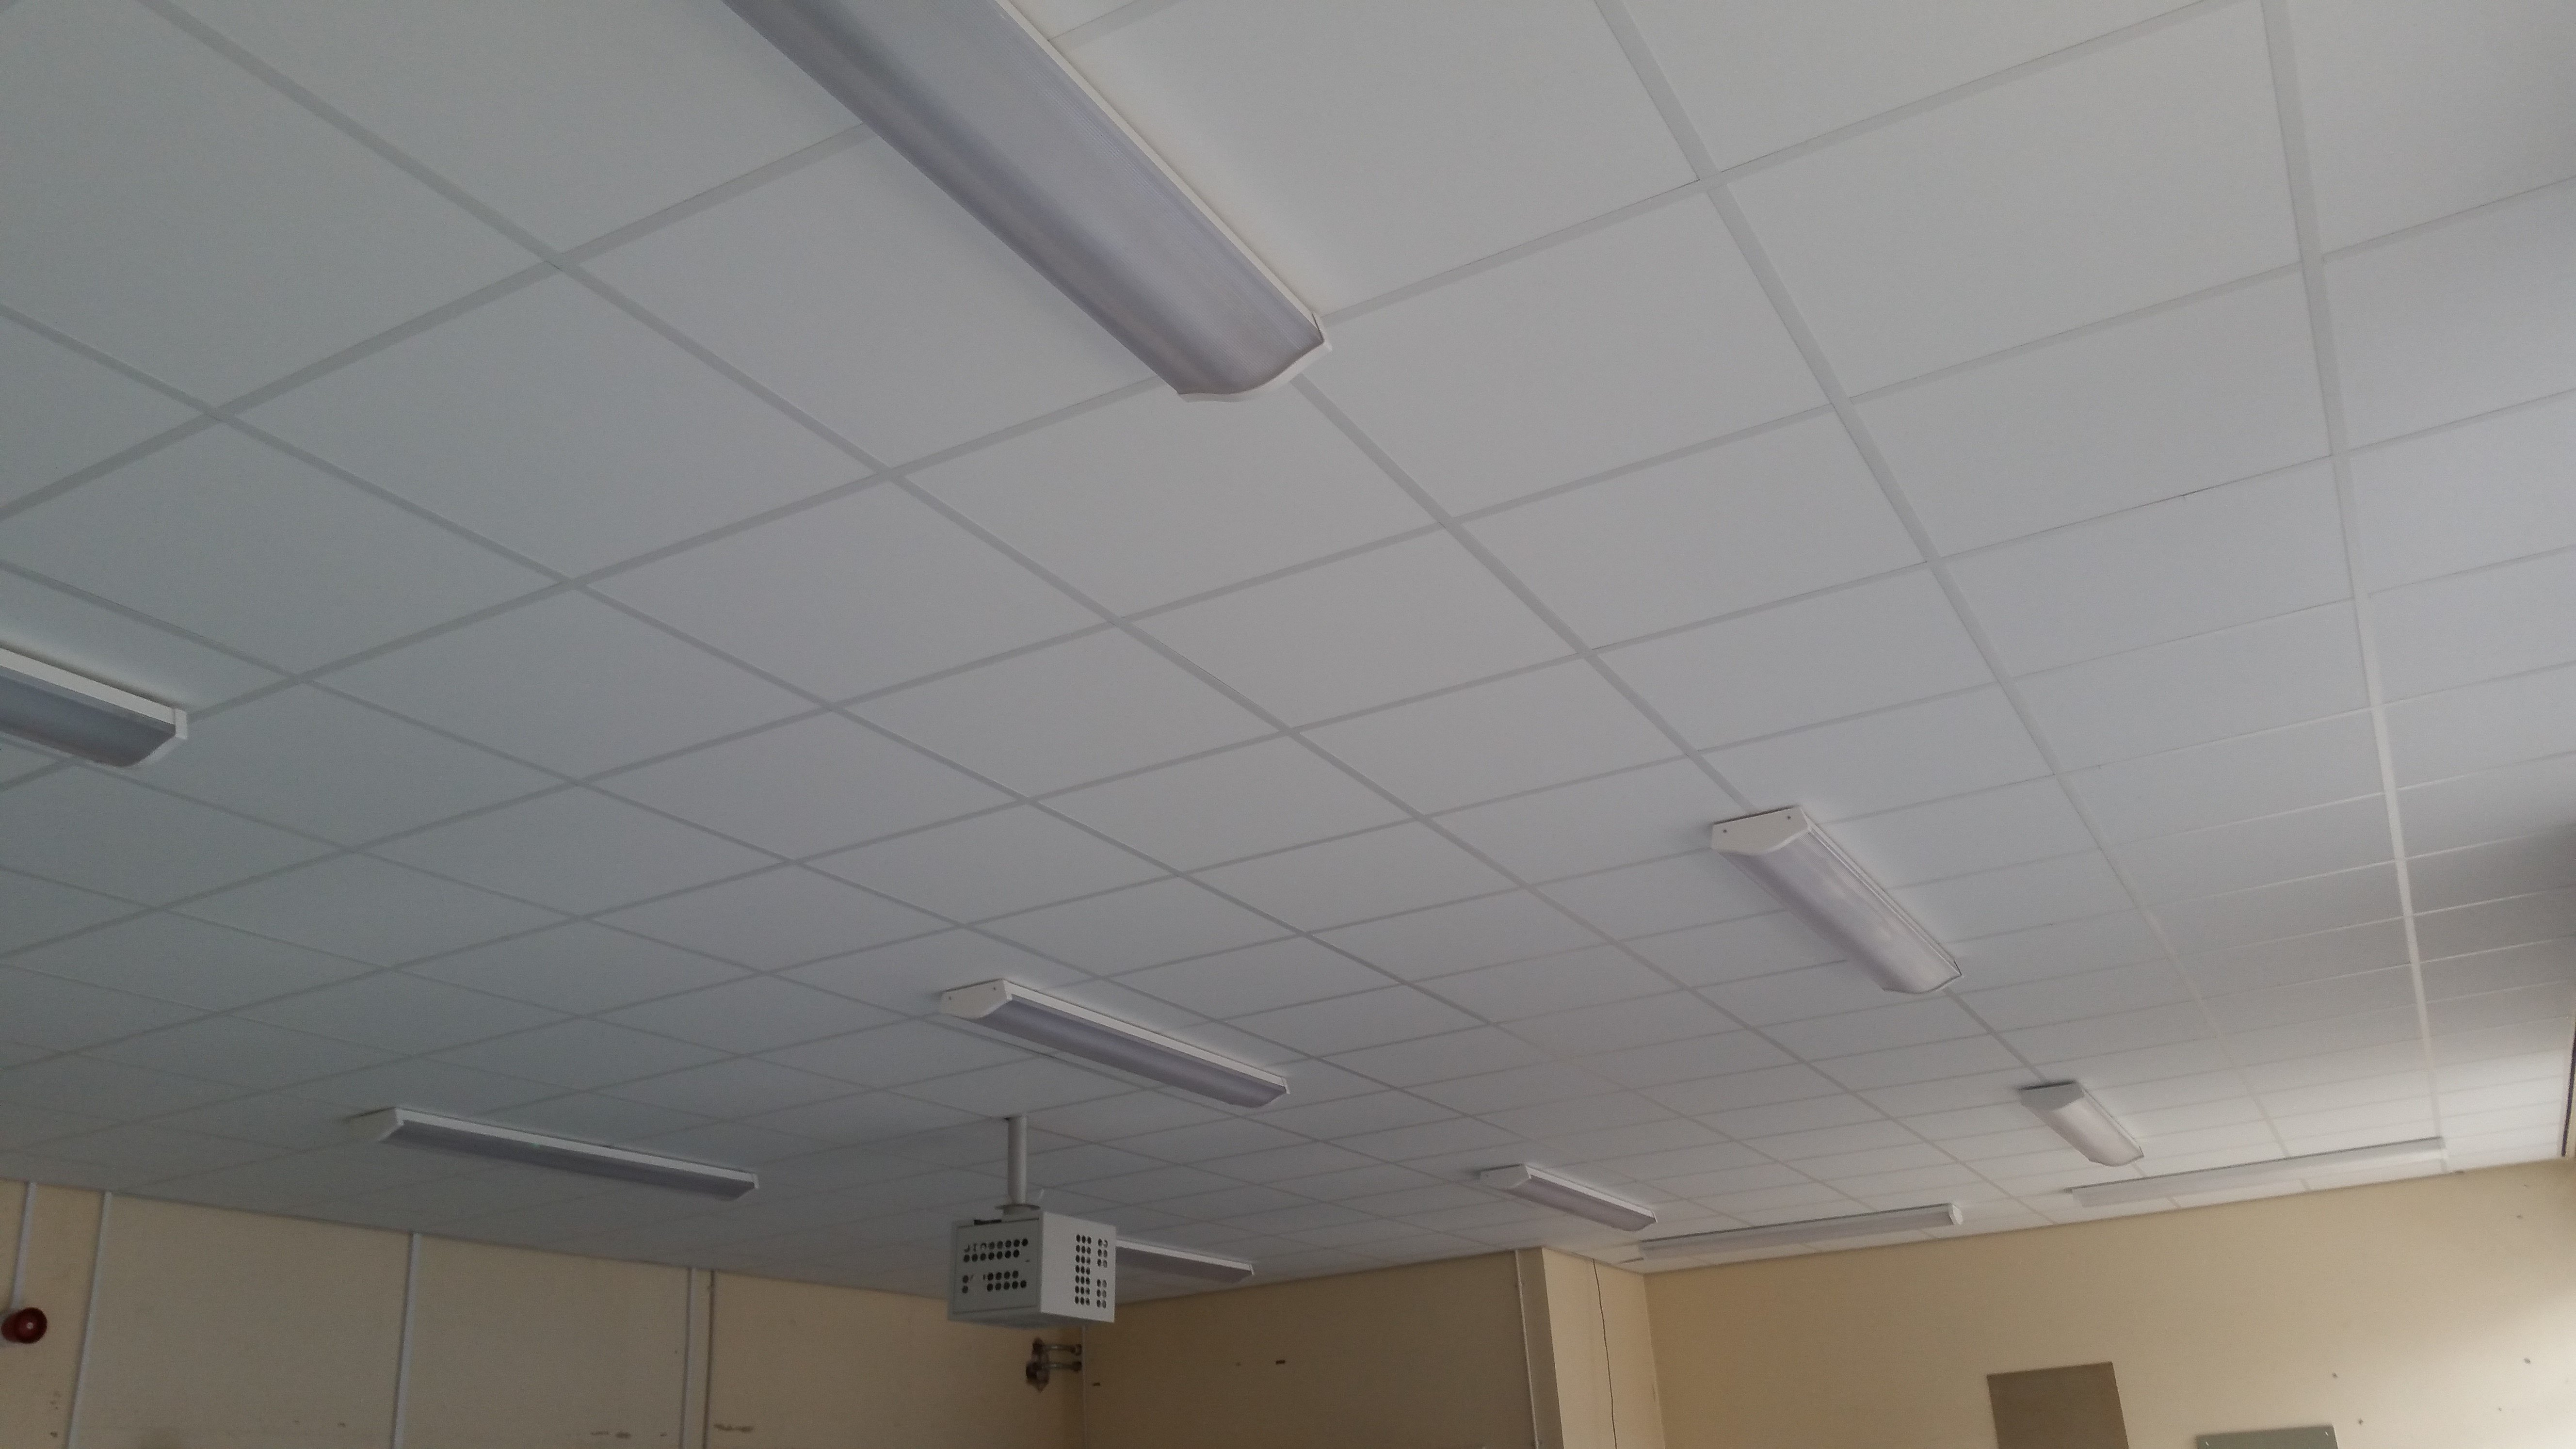 Strip lights in a suspended ceiling